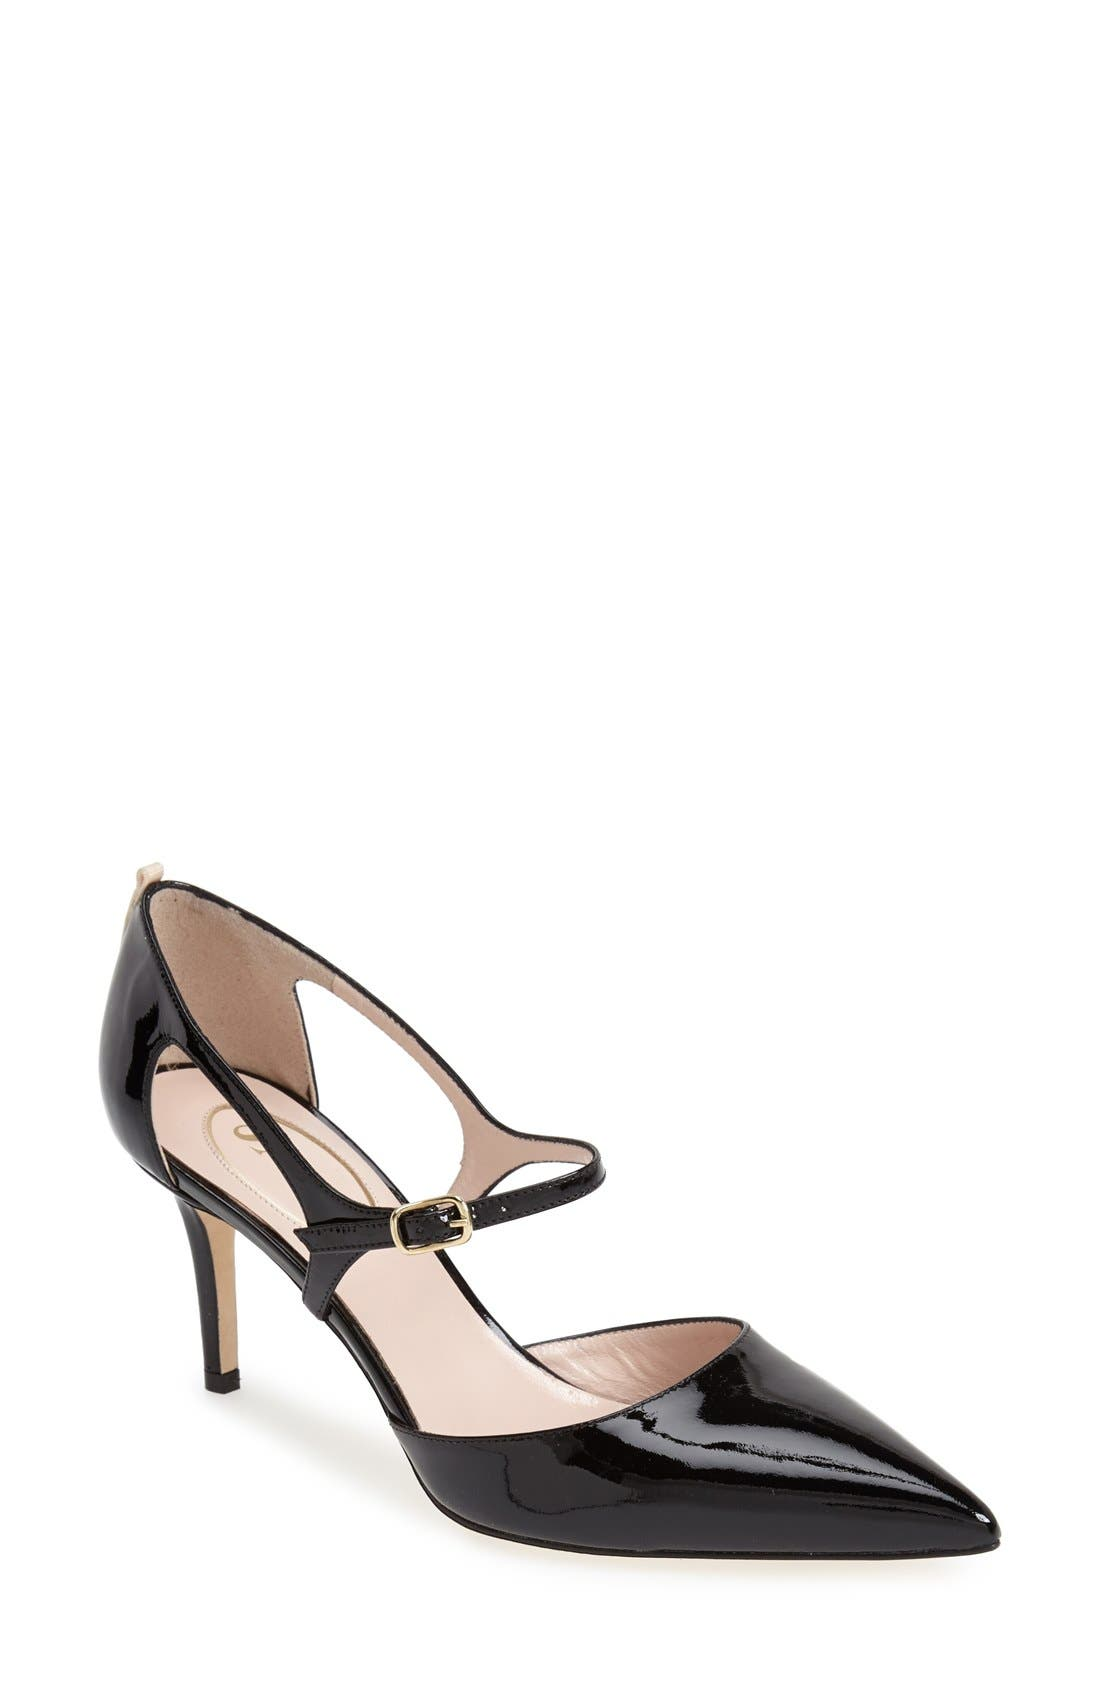 Main Image - SJP by Sarah Jessica Parker 'Phoebe' Mary Jane Pump (Women)